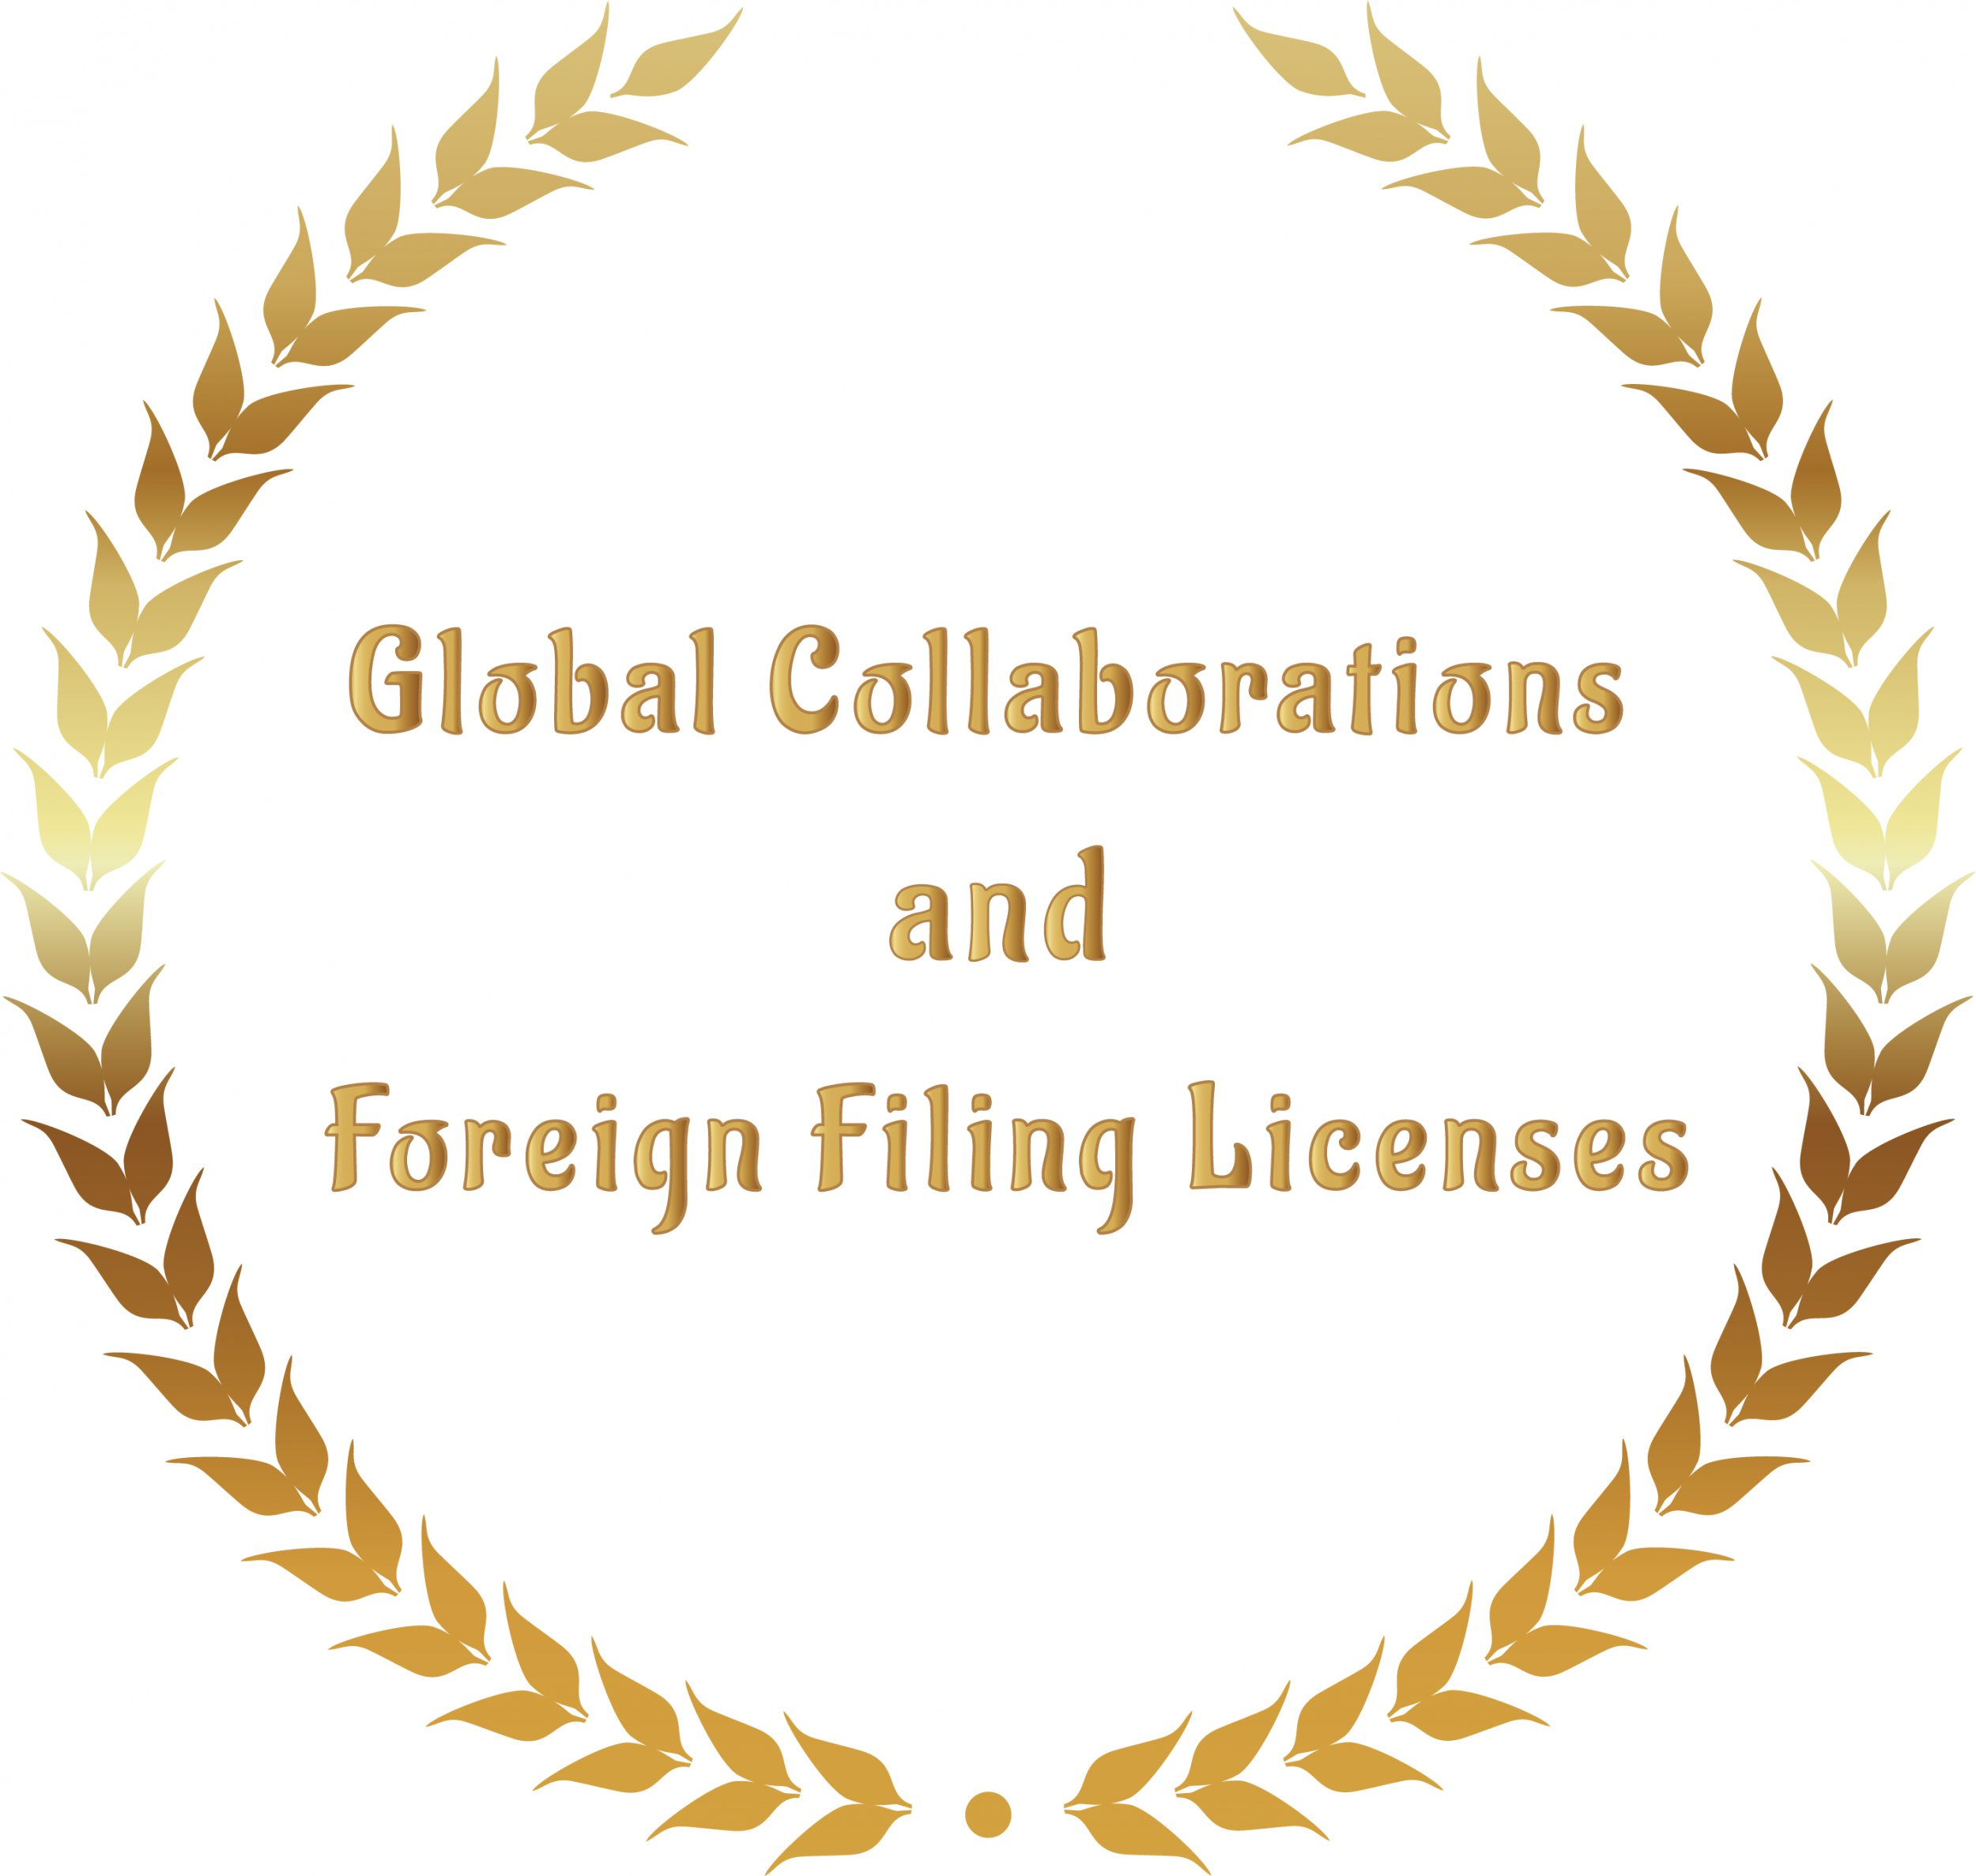 Global Collaborations and Foreign Filing Licenses